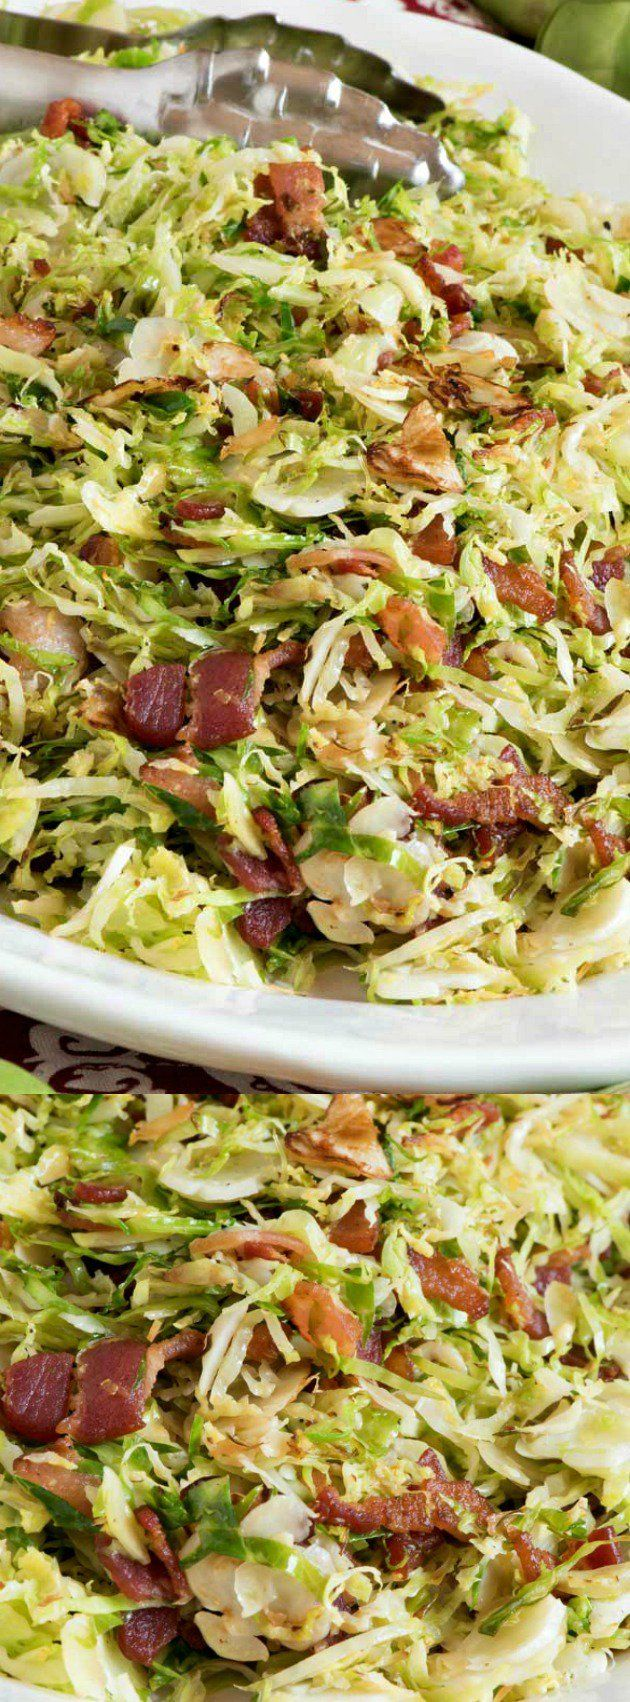 SHAVED BRUSSELS SPROUTS WITH BACON longpin